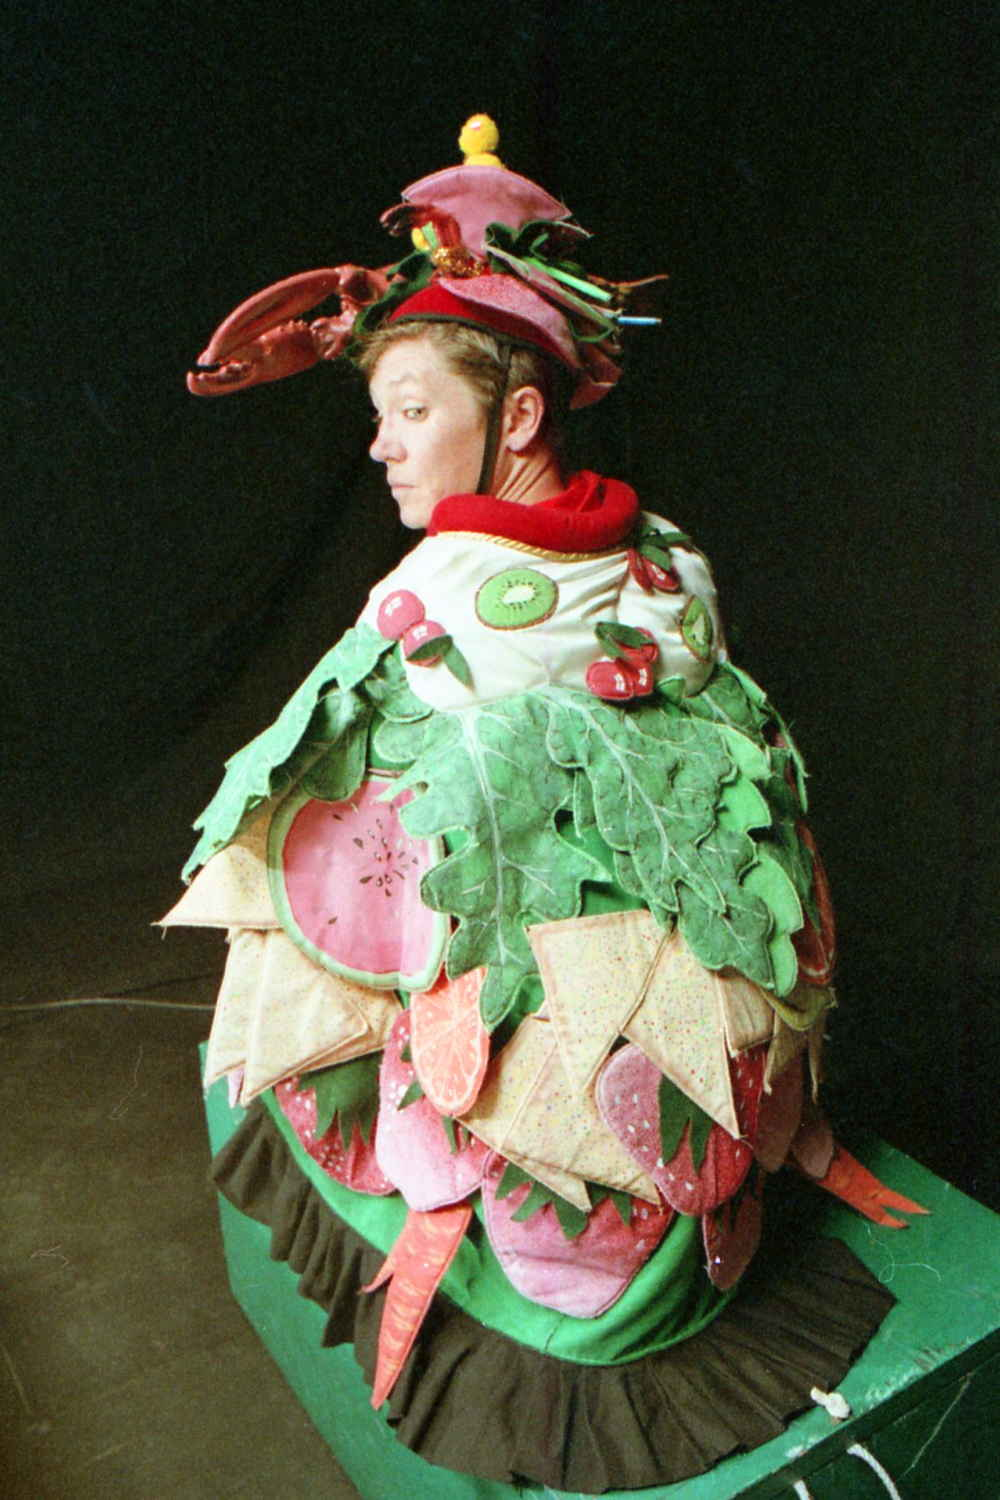 Handspan Theatre Guts costumed actors squatting in embroidered cloak of green leaves and pink vegetables with a lobster helmet